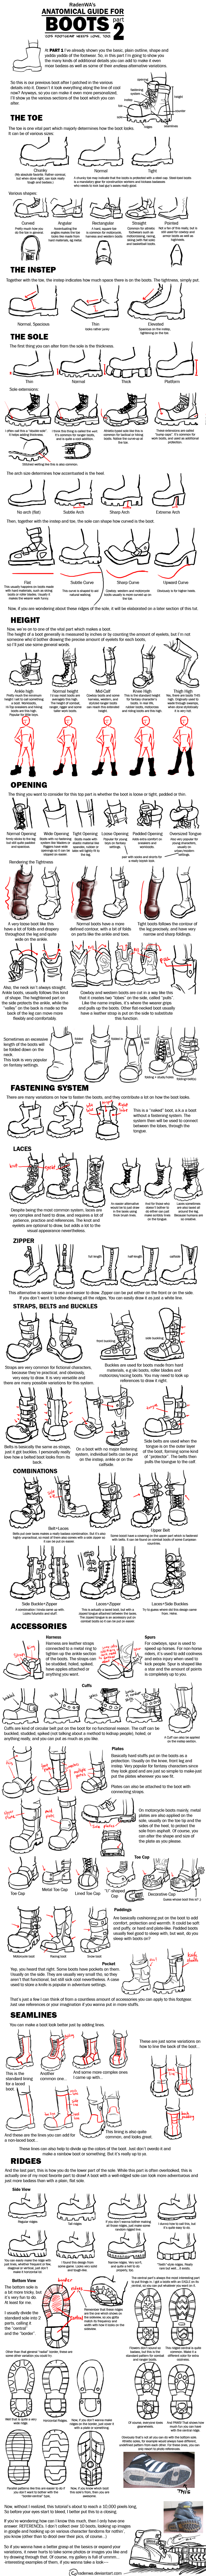 WA's BOOT Anatomy Tutorial Pt2